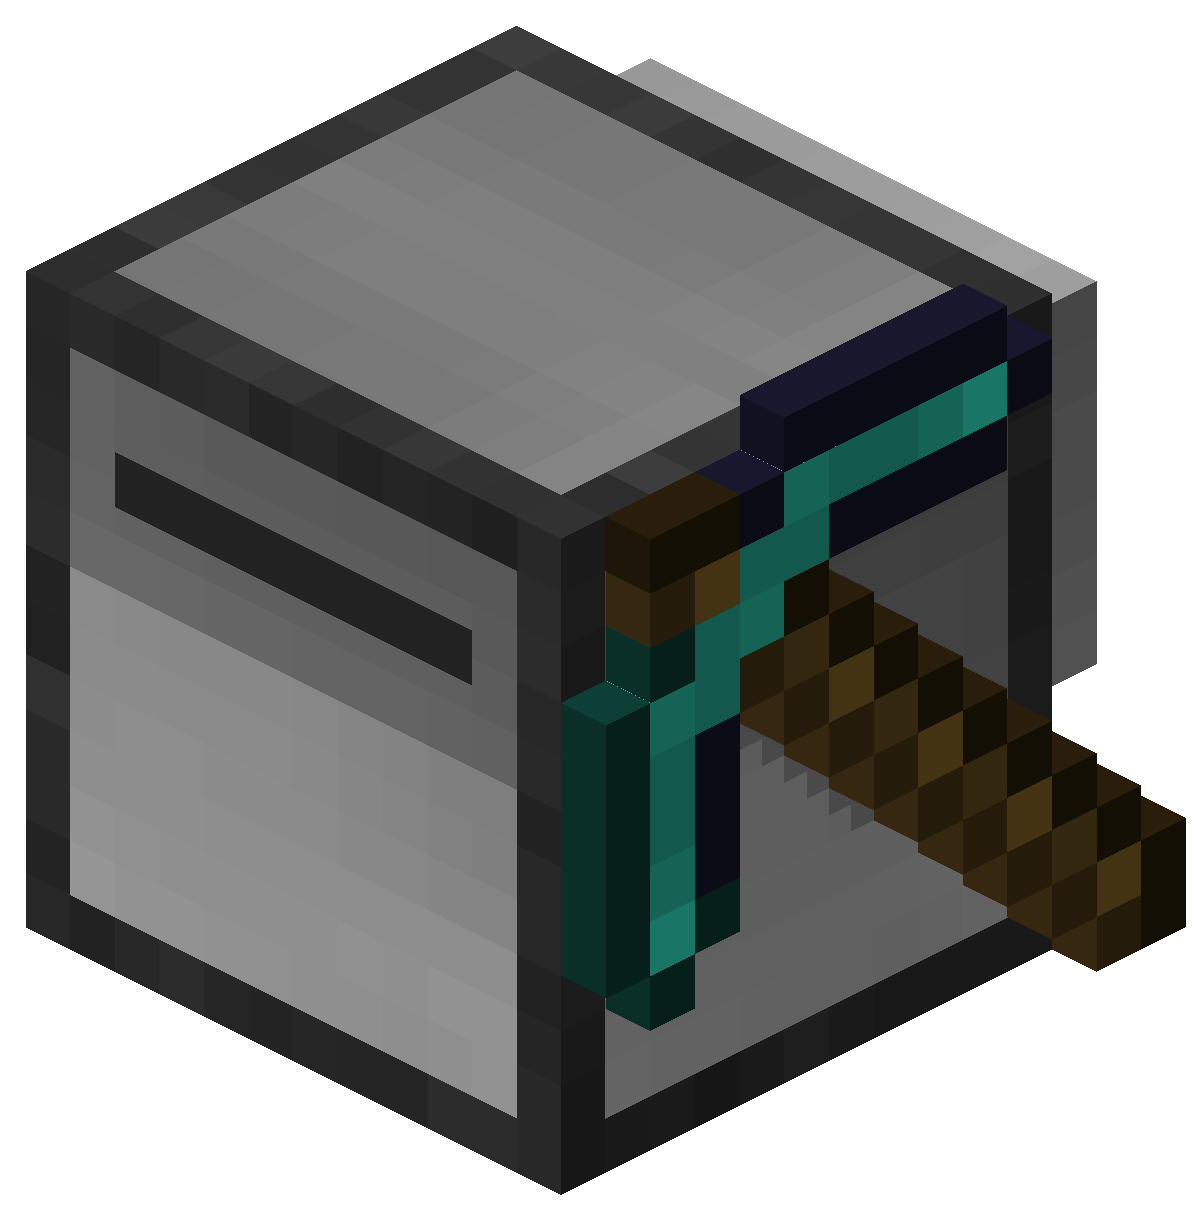 minecraft how to break obsidian without diamond pick